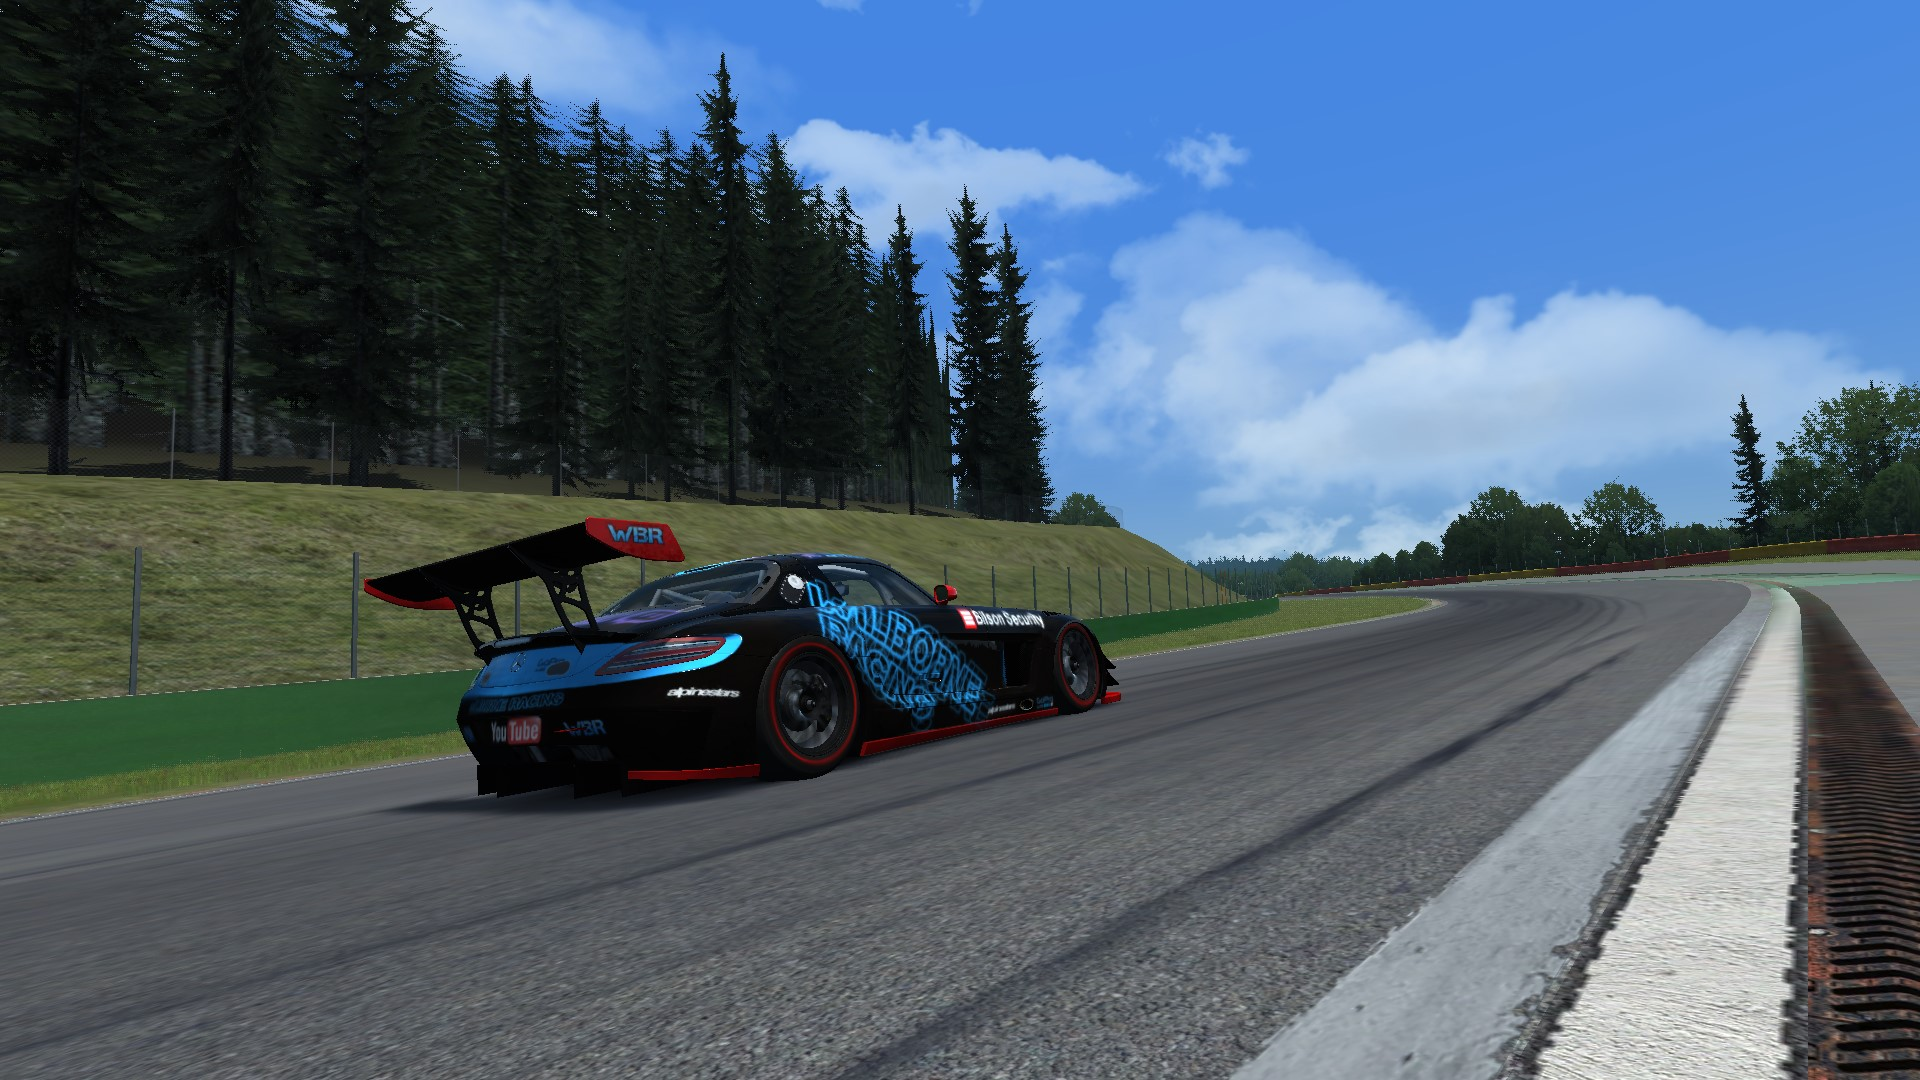 Screenshot_sareni_camaro_gt_racecar_spa_2-2-2015-17-24-25.jpg